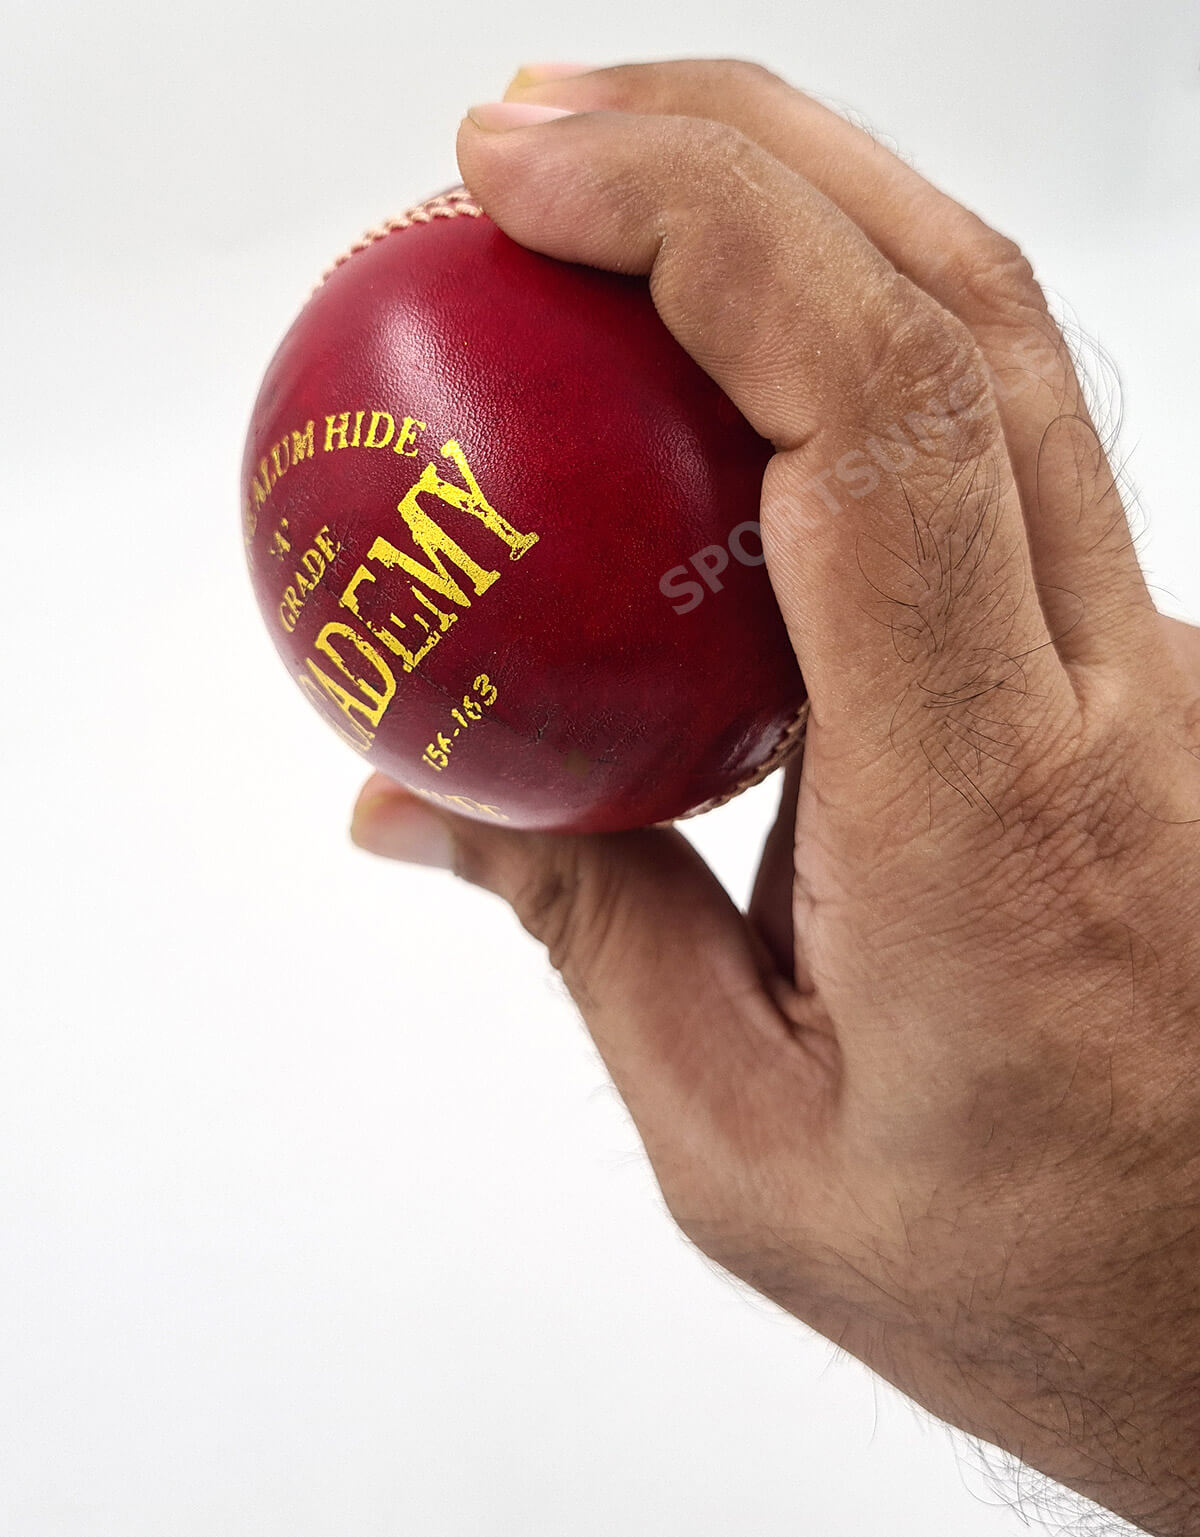 cricket ball balance